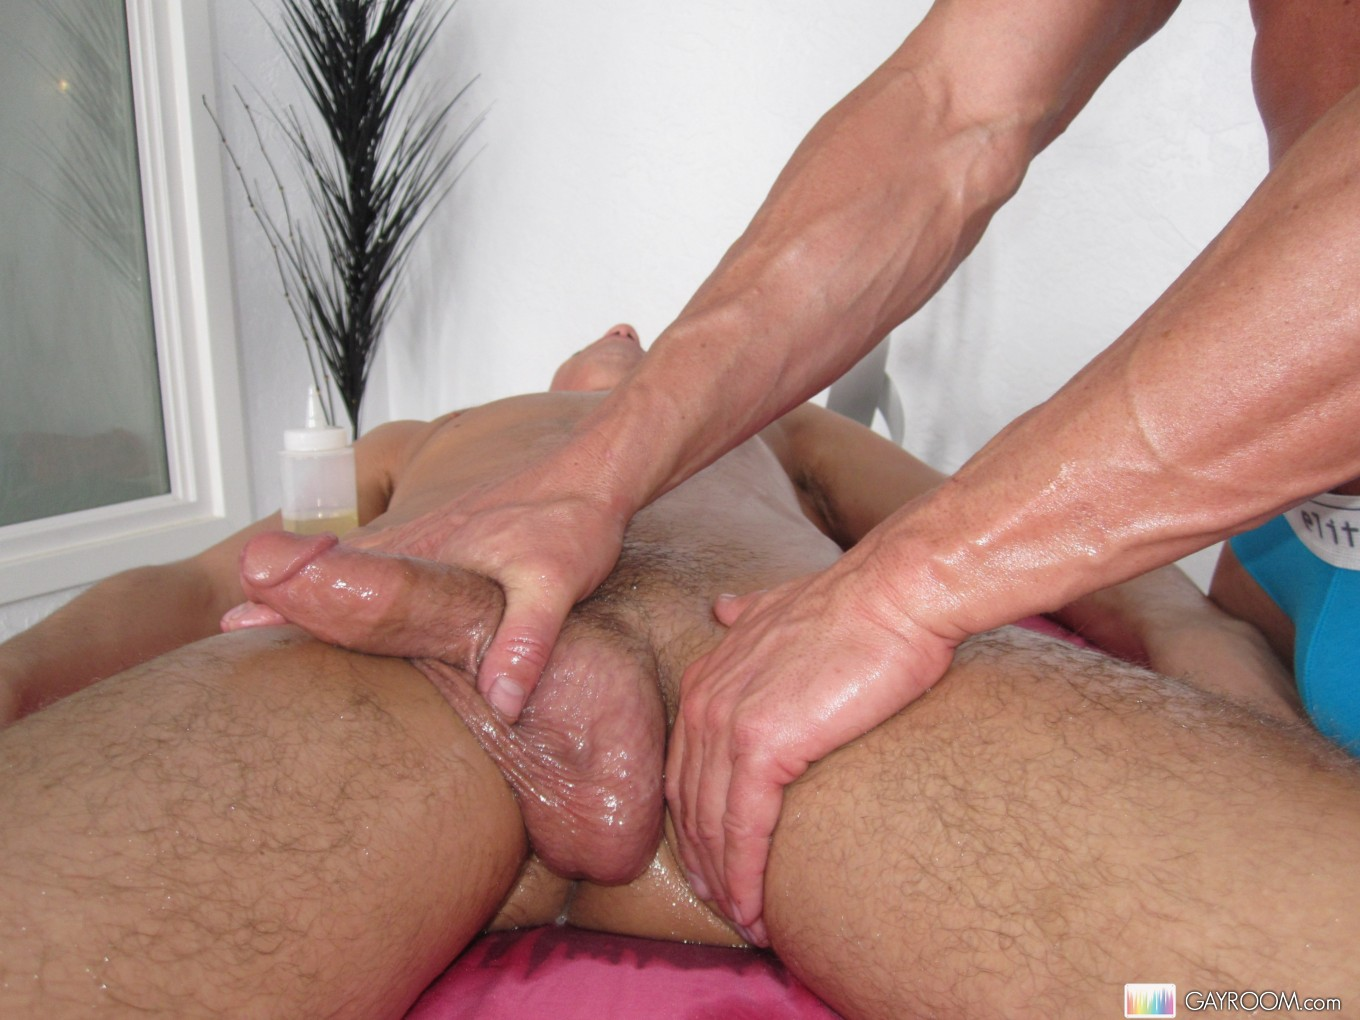 Big dick gay massage